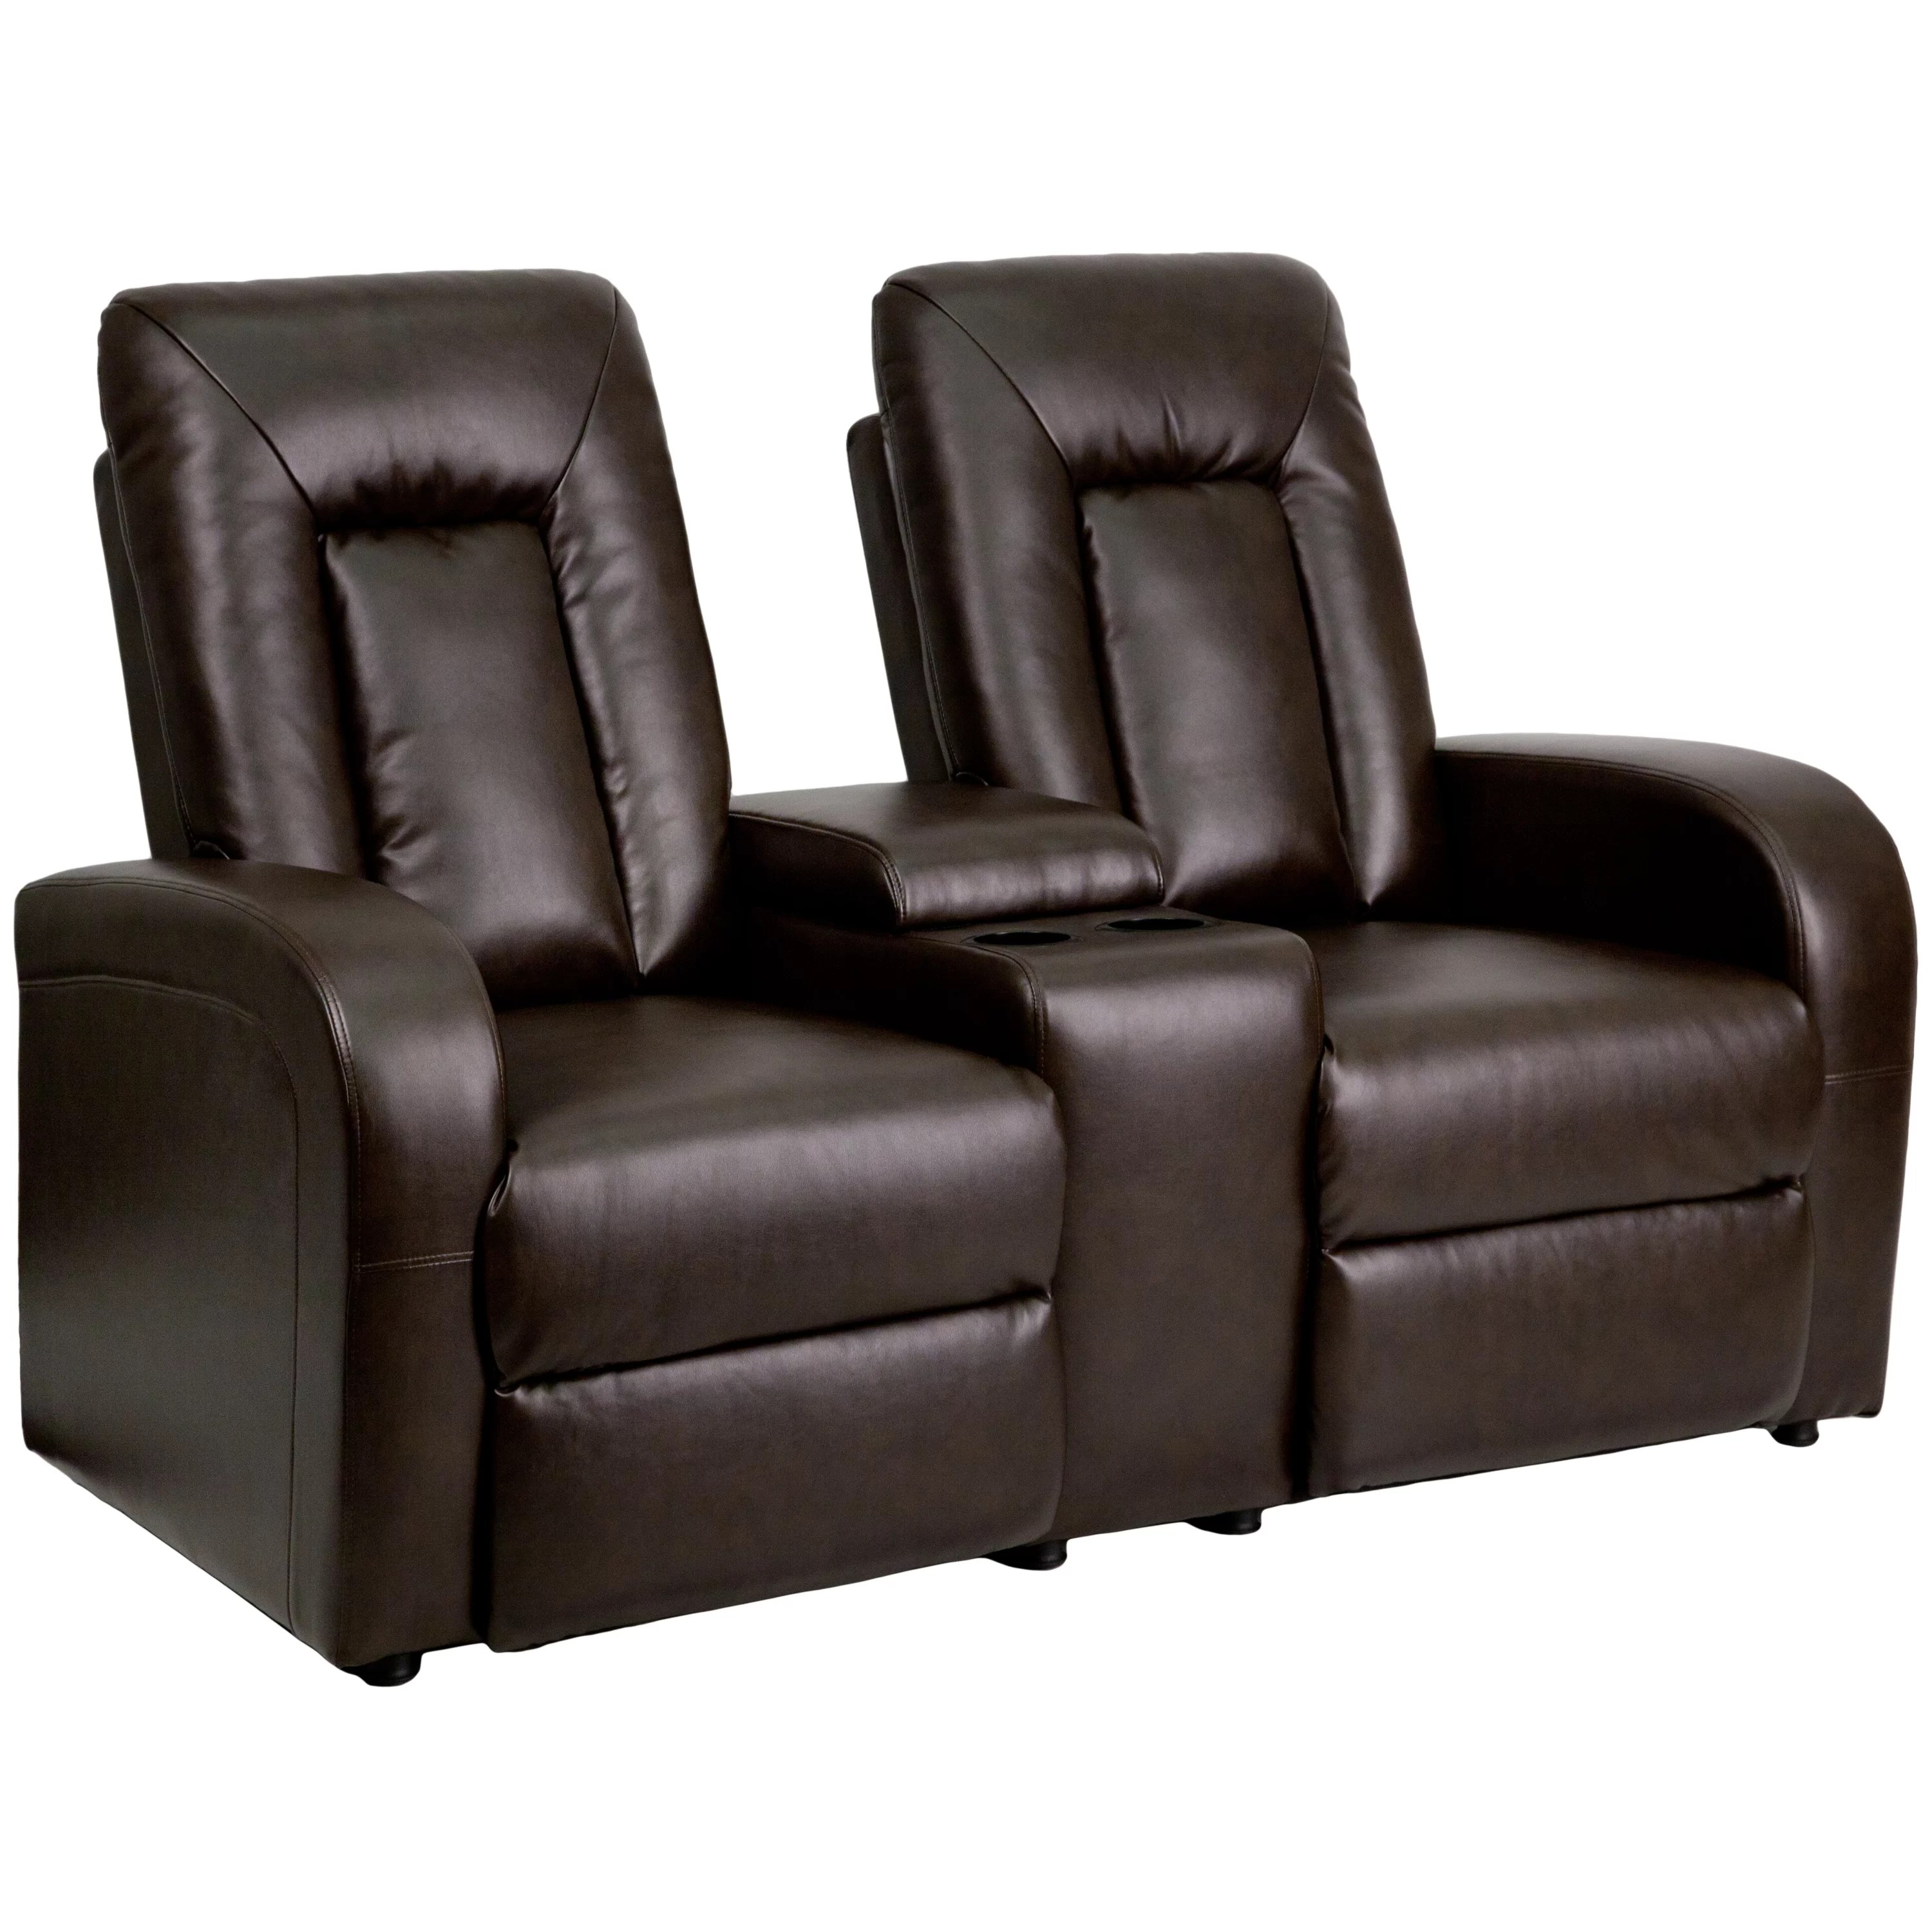 theater recliner chairs chair covers brisbane flash furniture leather 2 seat home with